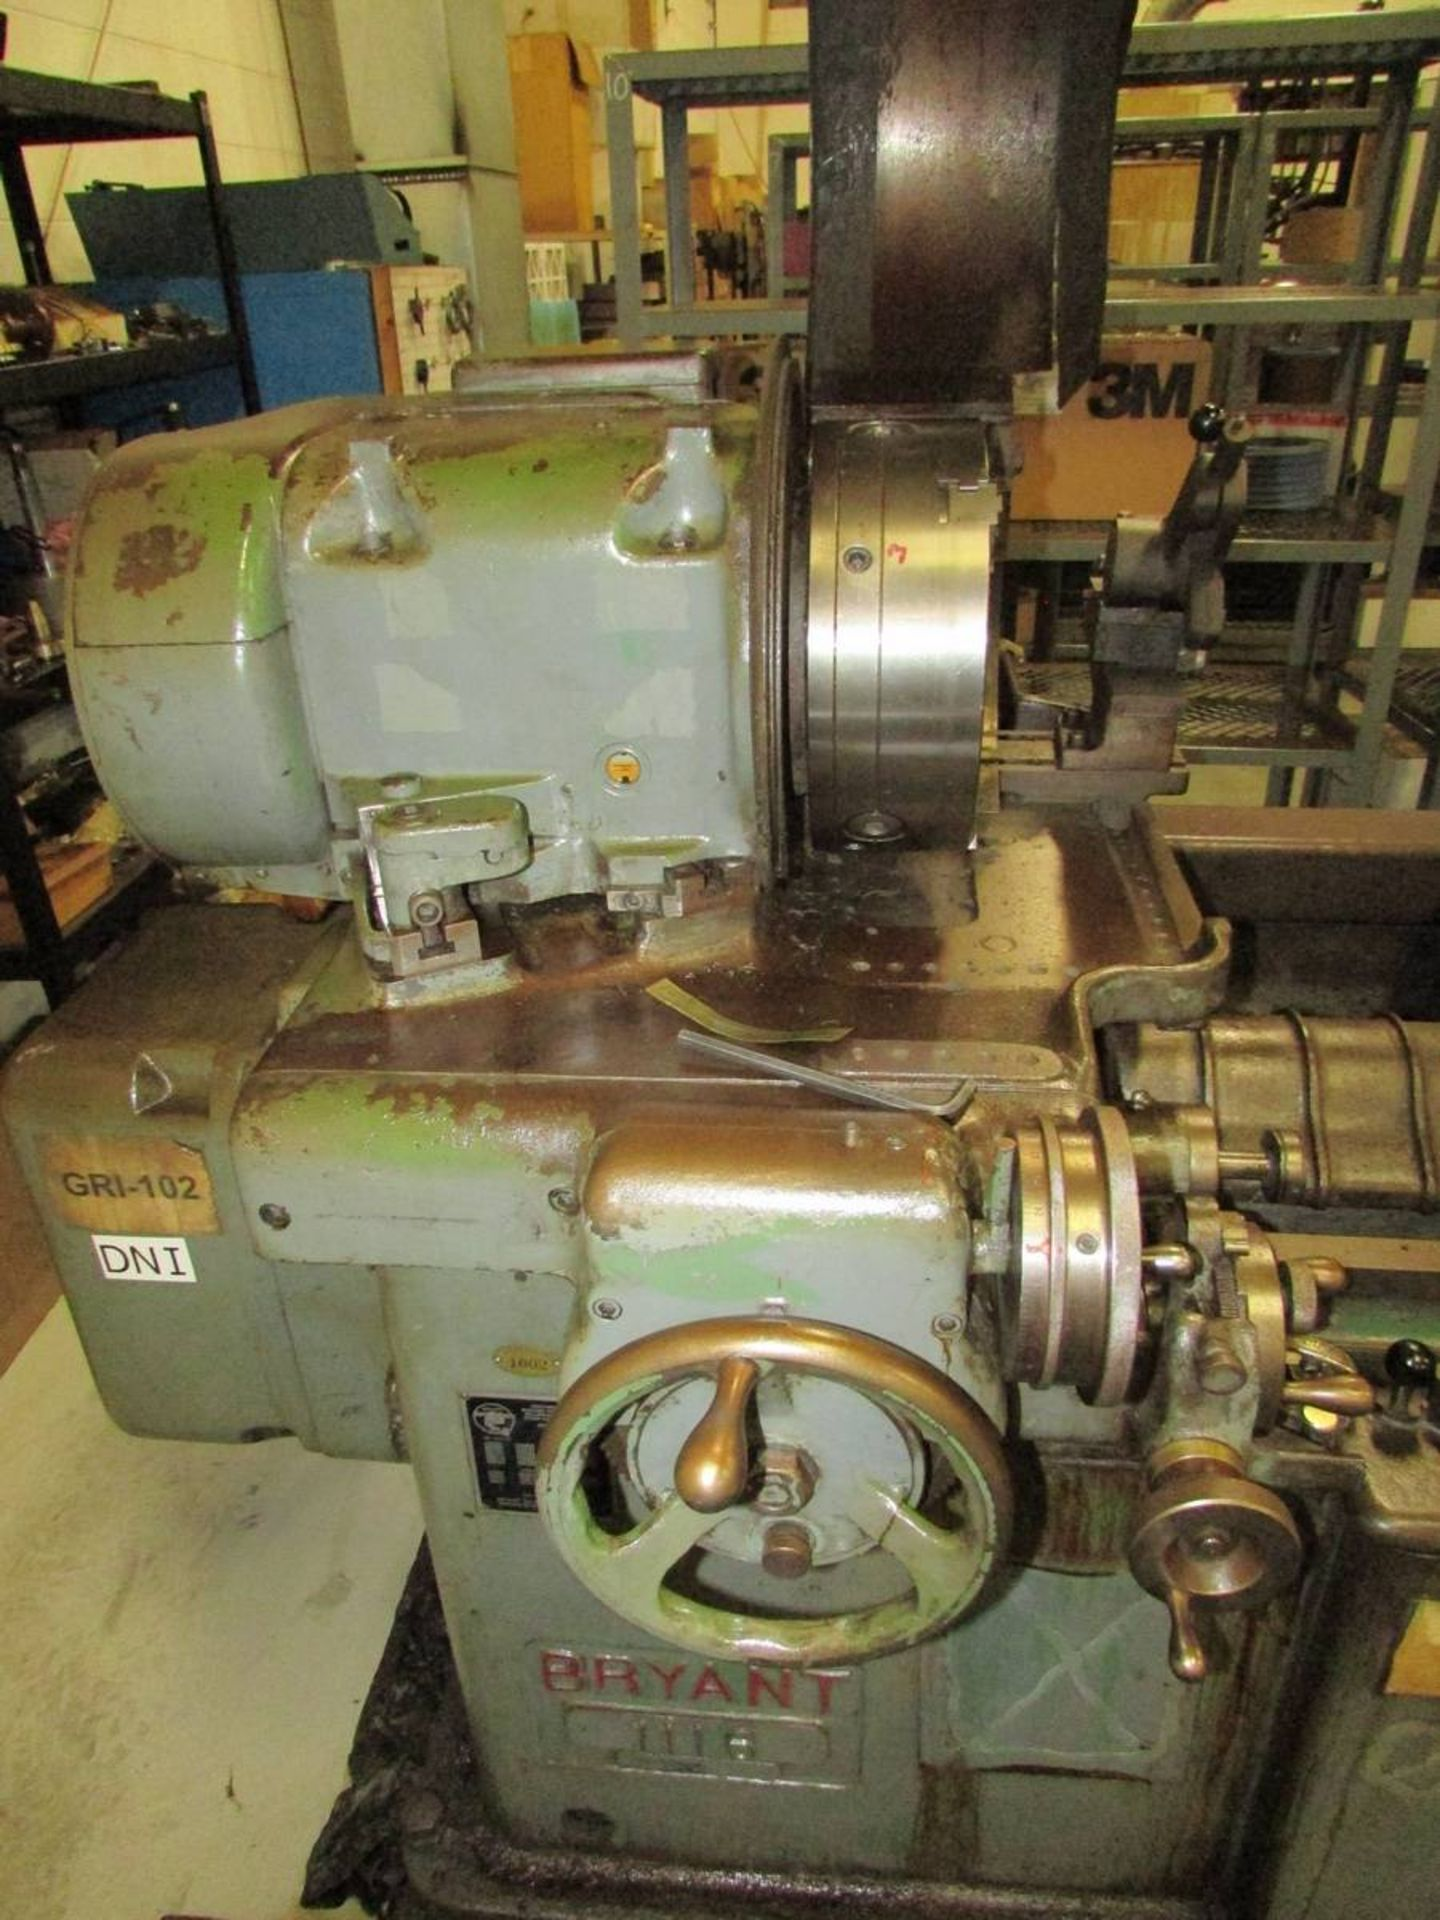 1981 Bryant 1116 ID Cylindrical Grinder - Image 7 of 20